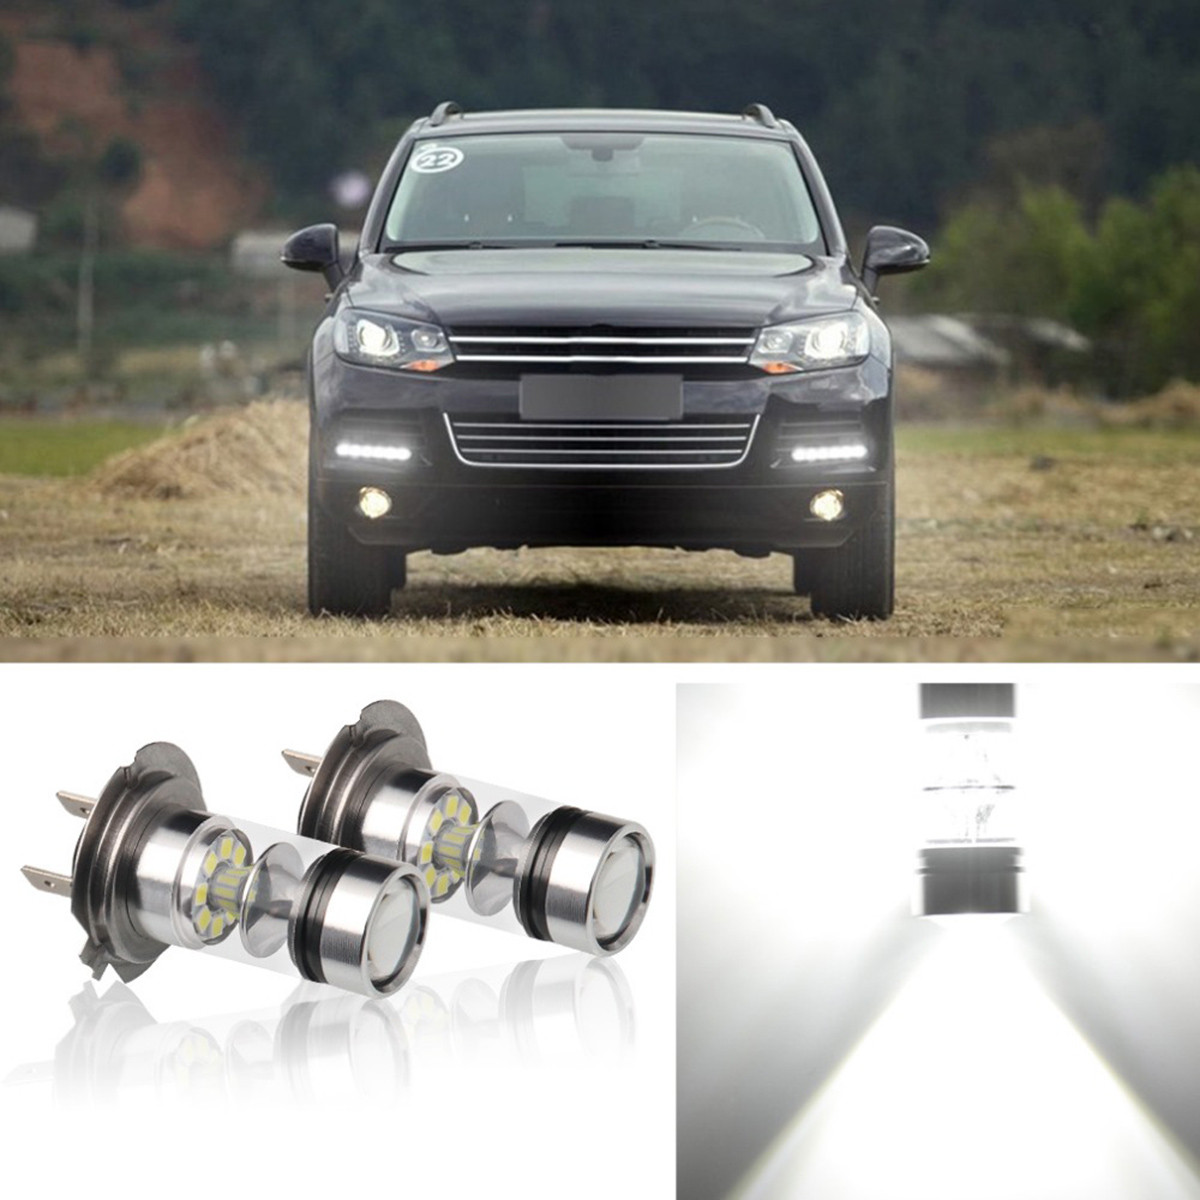 1PCS <font><b>Car</b></font> <font><b>Led</b></font> <font><b>H4</b></font> H7 H8 H11 <font><b>LED</b></font> 9005/HB3 9006/HB4 Fog Lights White 100W <font><b>Bulbs</b></font> 20 SMD Lamp Driving Turning Ampoule image